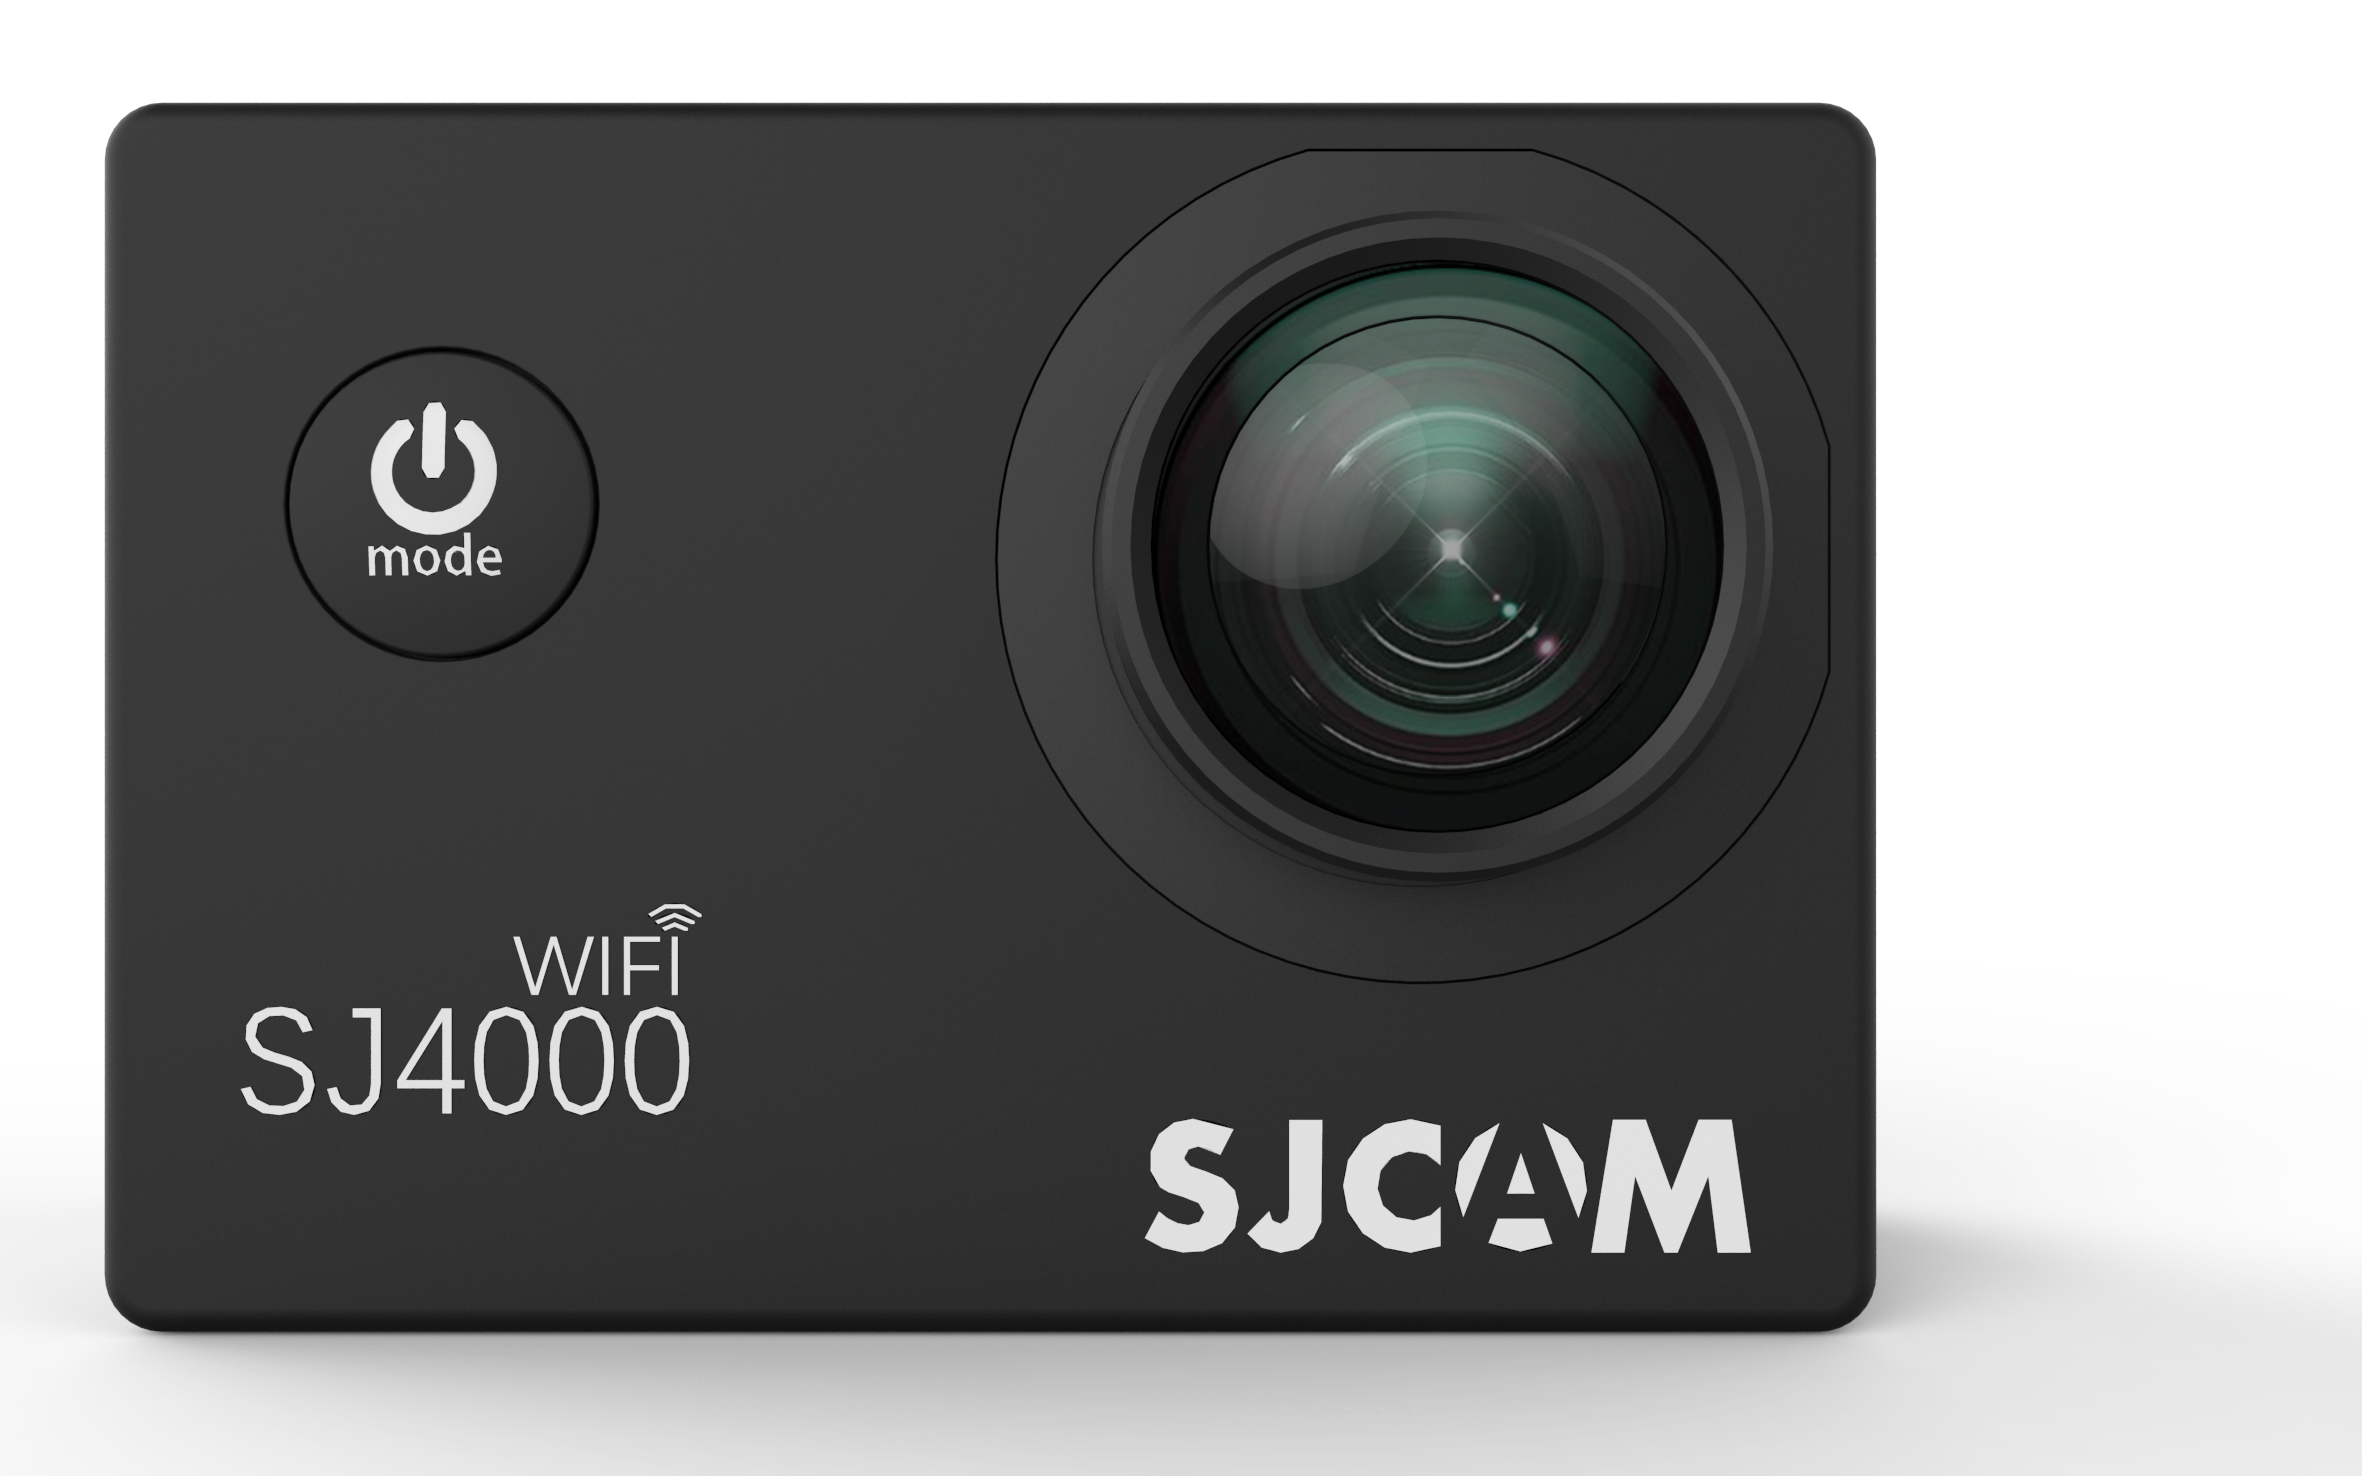 SJCAM SJ4000 WiFi Action Camera 12MP 900mAh 2.0 inch LCD Screen 2K 30FPS 170 Degree Angle For Home Outdoor Sport Activities